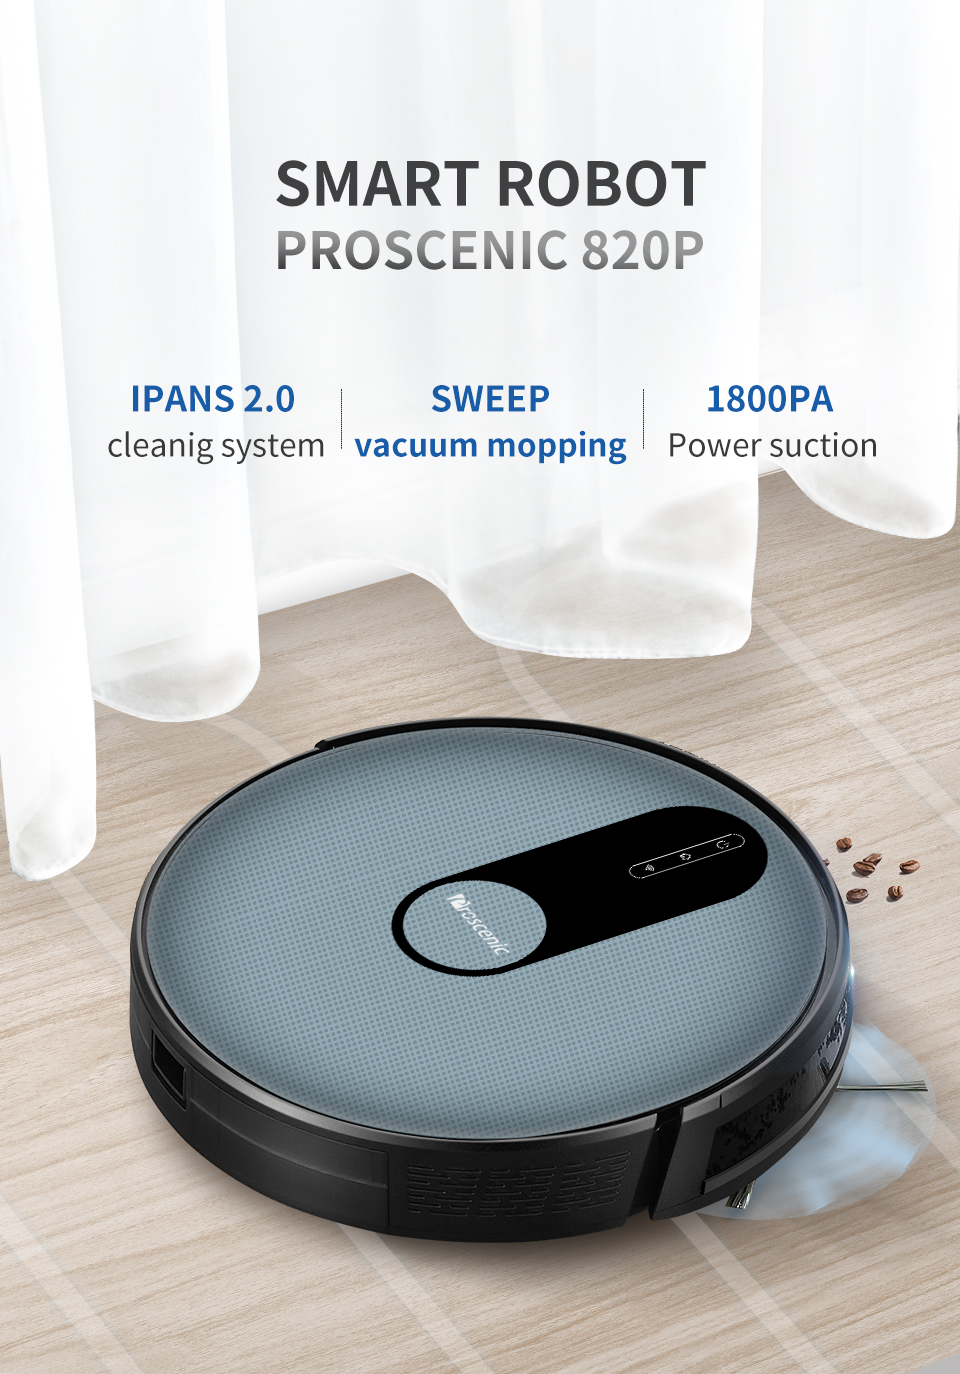 H35af6c11047040599d3668c0f307bc24Q Proscenic 820P Robot Vacuum Cleaner Smart Planned 1800Pa Suction with wet cleaning for Home Carpet Cleaner Washing Smart Robot